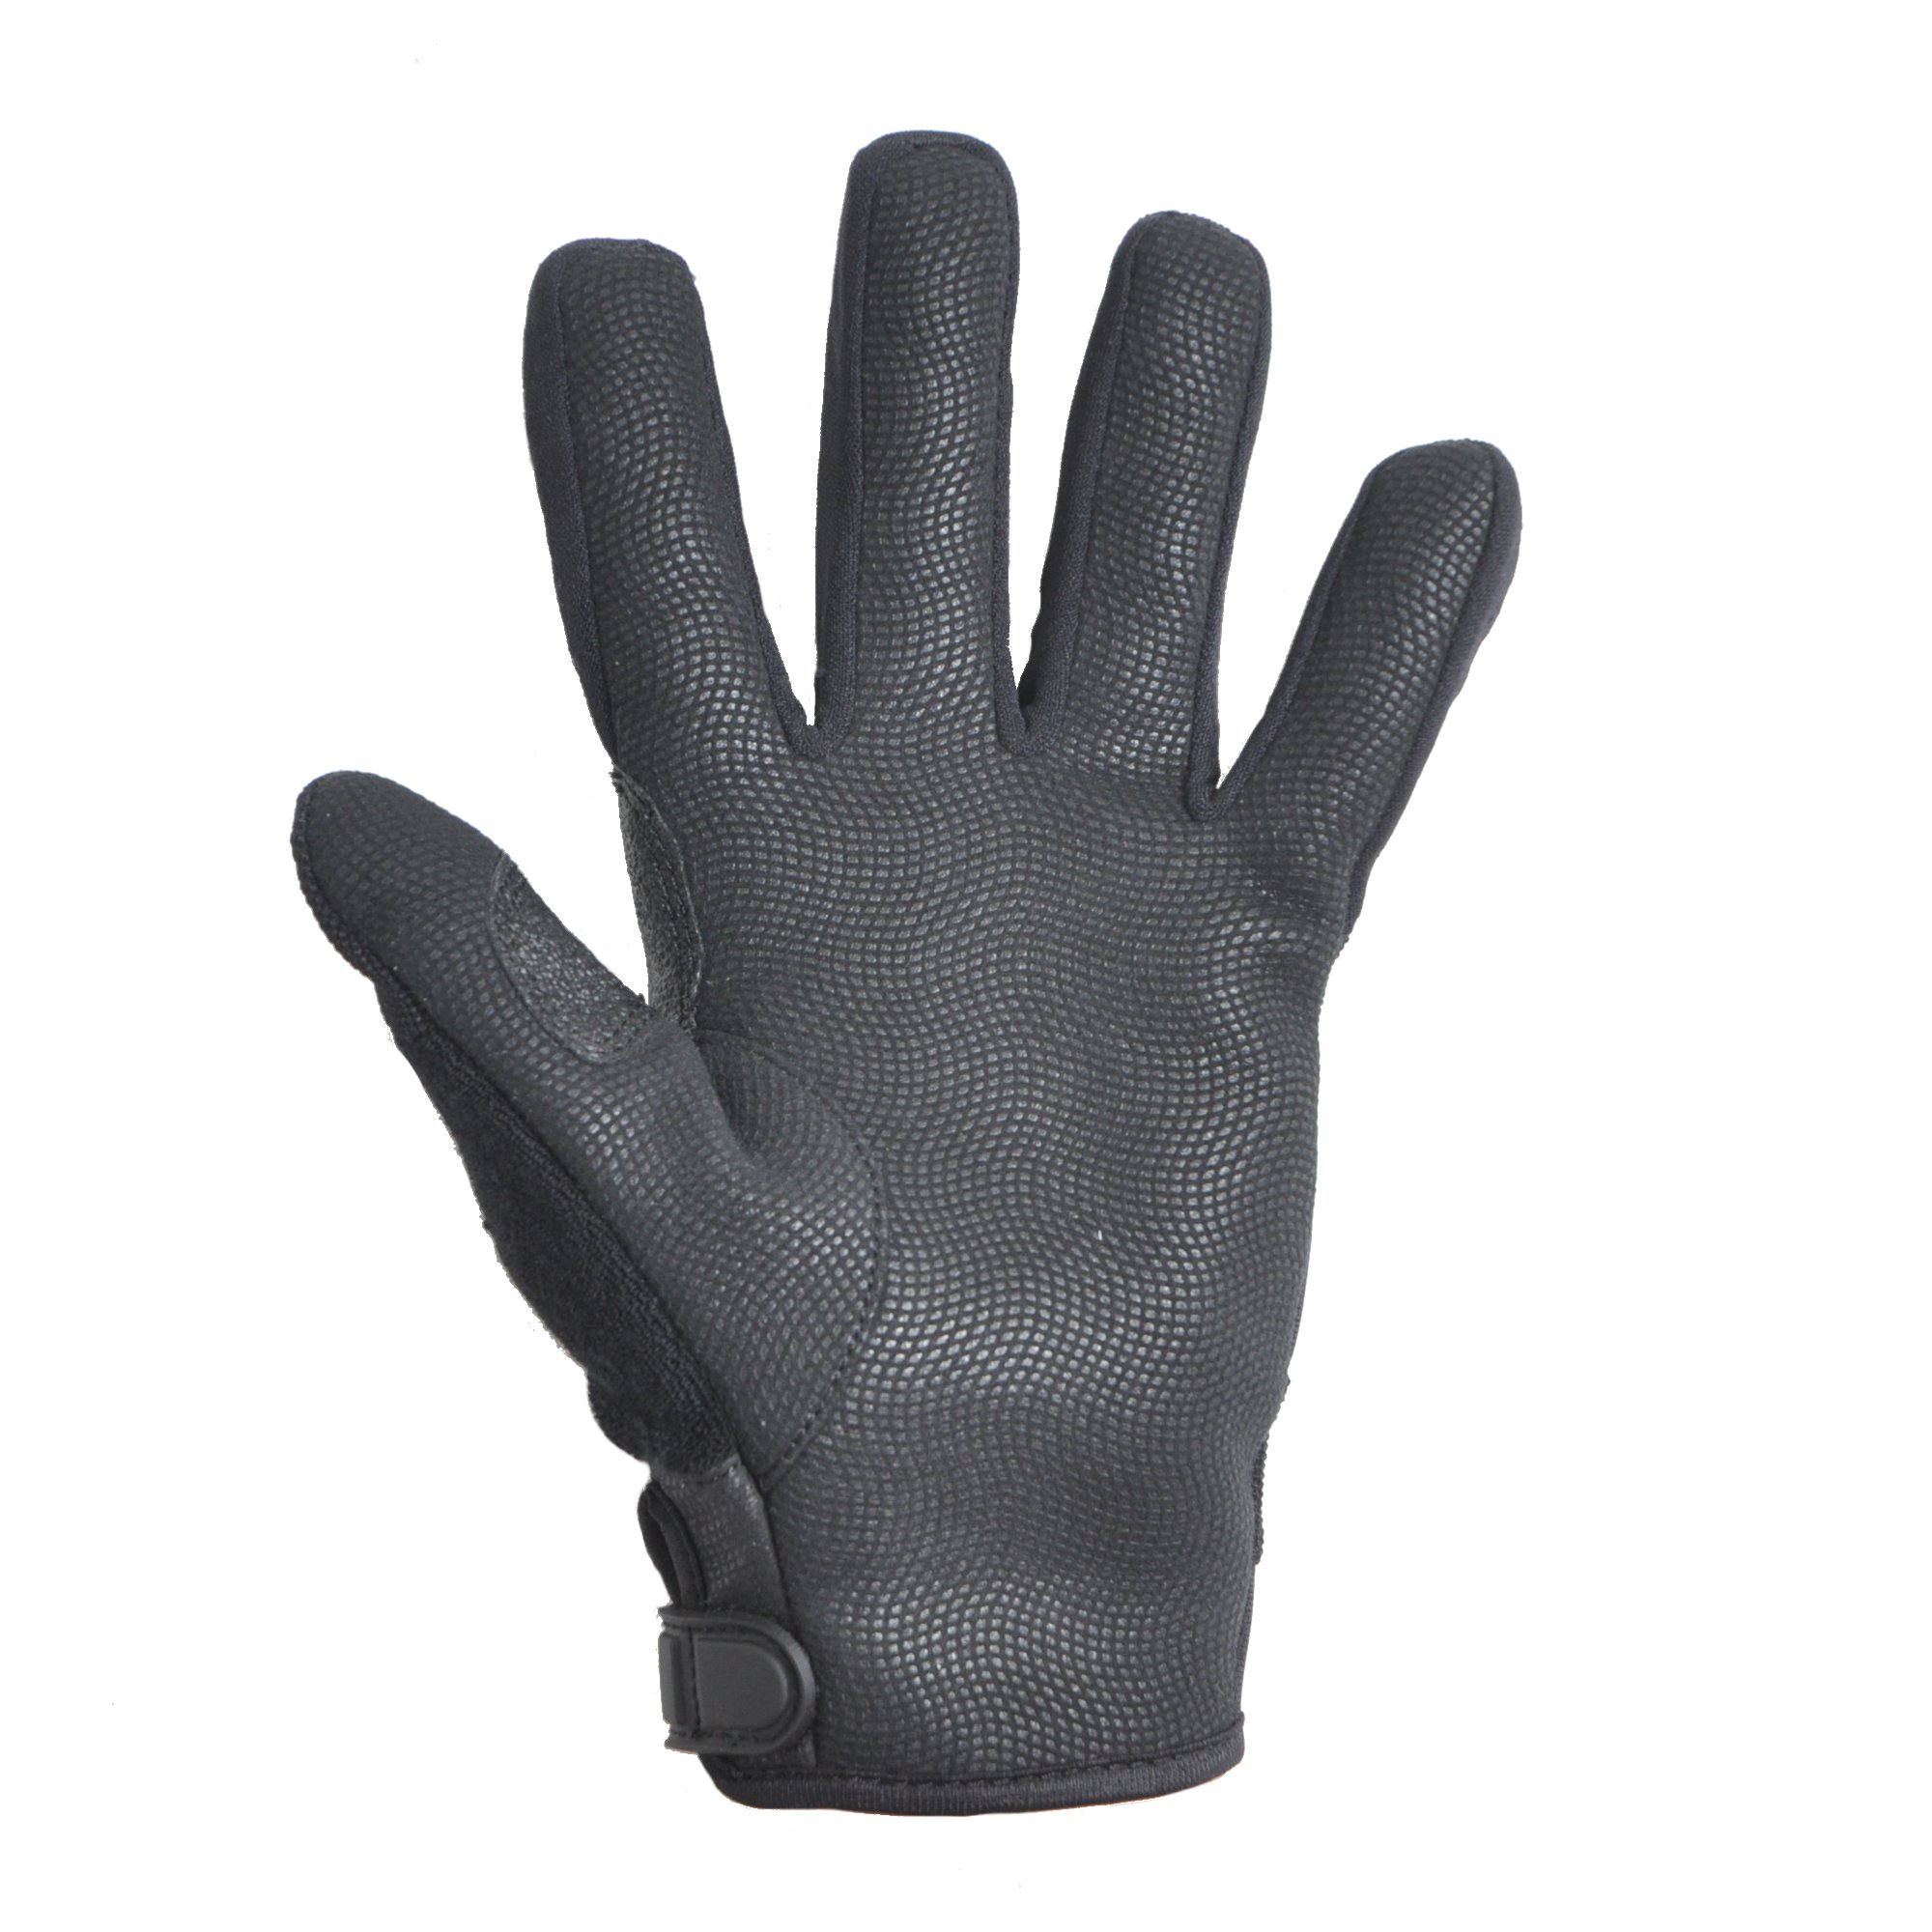 Hatch SGK100 Street Guard  Glove w/Kevlar, Black, 2X-Large by Hatch (Image #3)